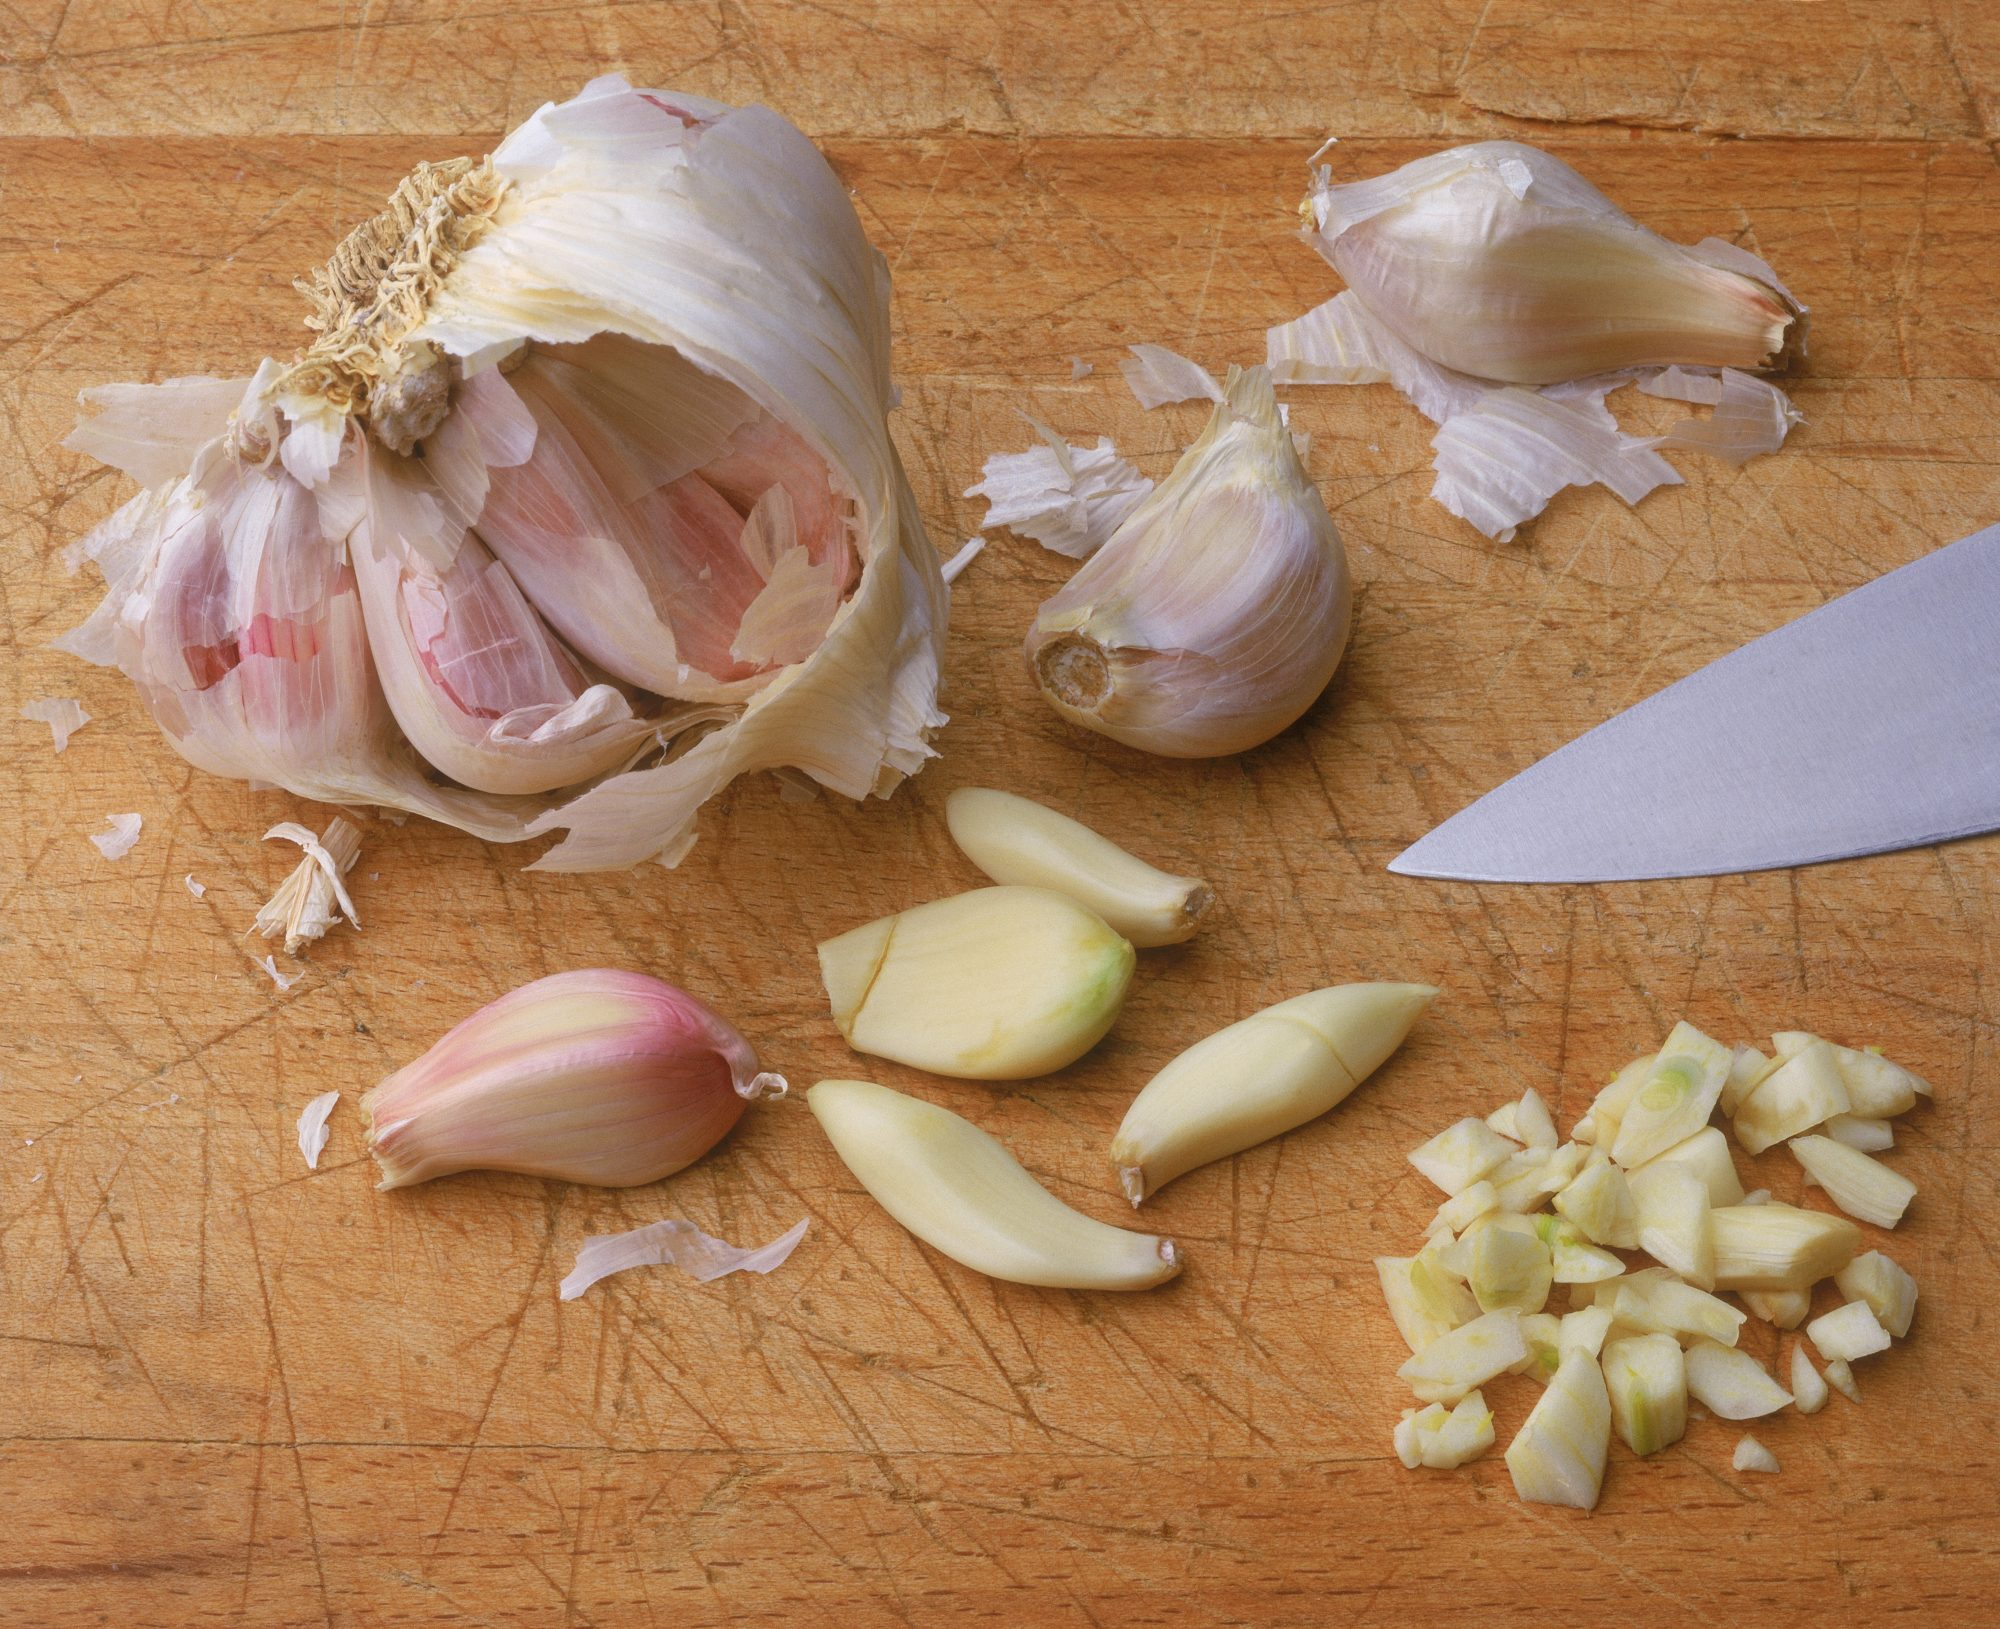 Does the Way You Prep Garlic Impact Its Flavor?